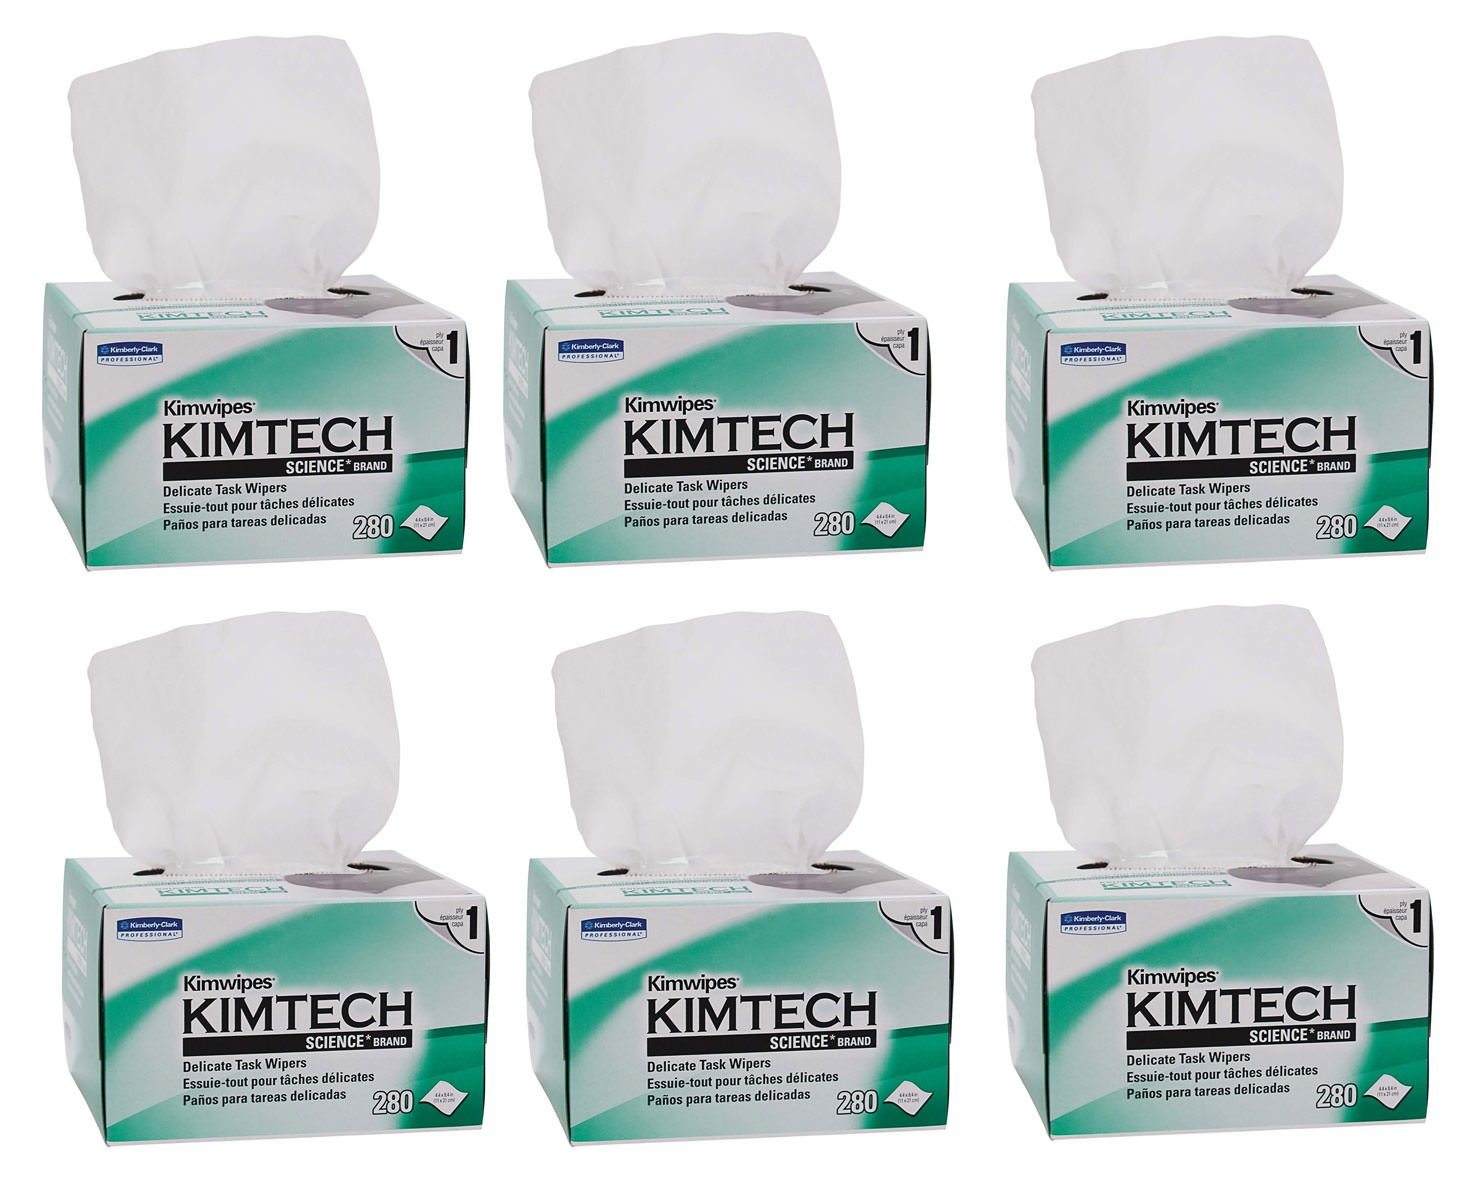 Pack of 560 Tissue Kimberly-Clark 34155 Kimwipes 1-Ply Delicate Task Wipes 4.4 x 8.4